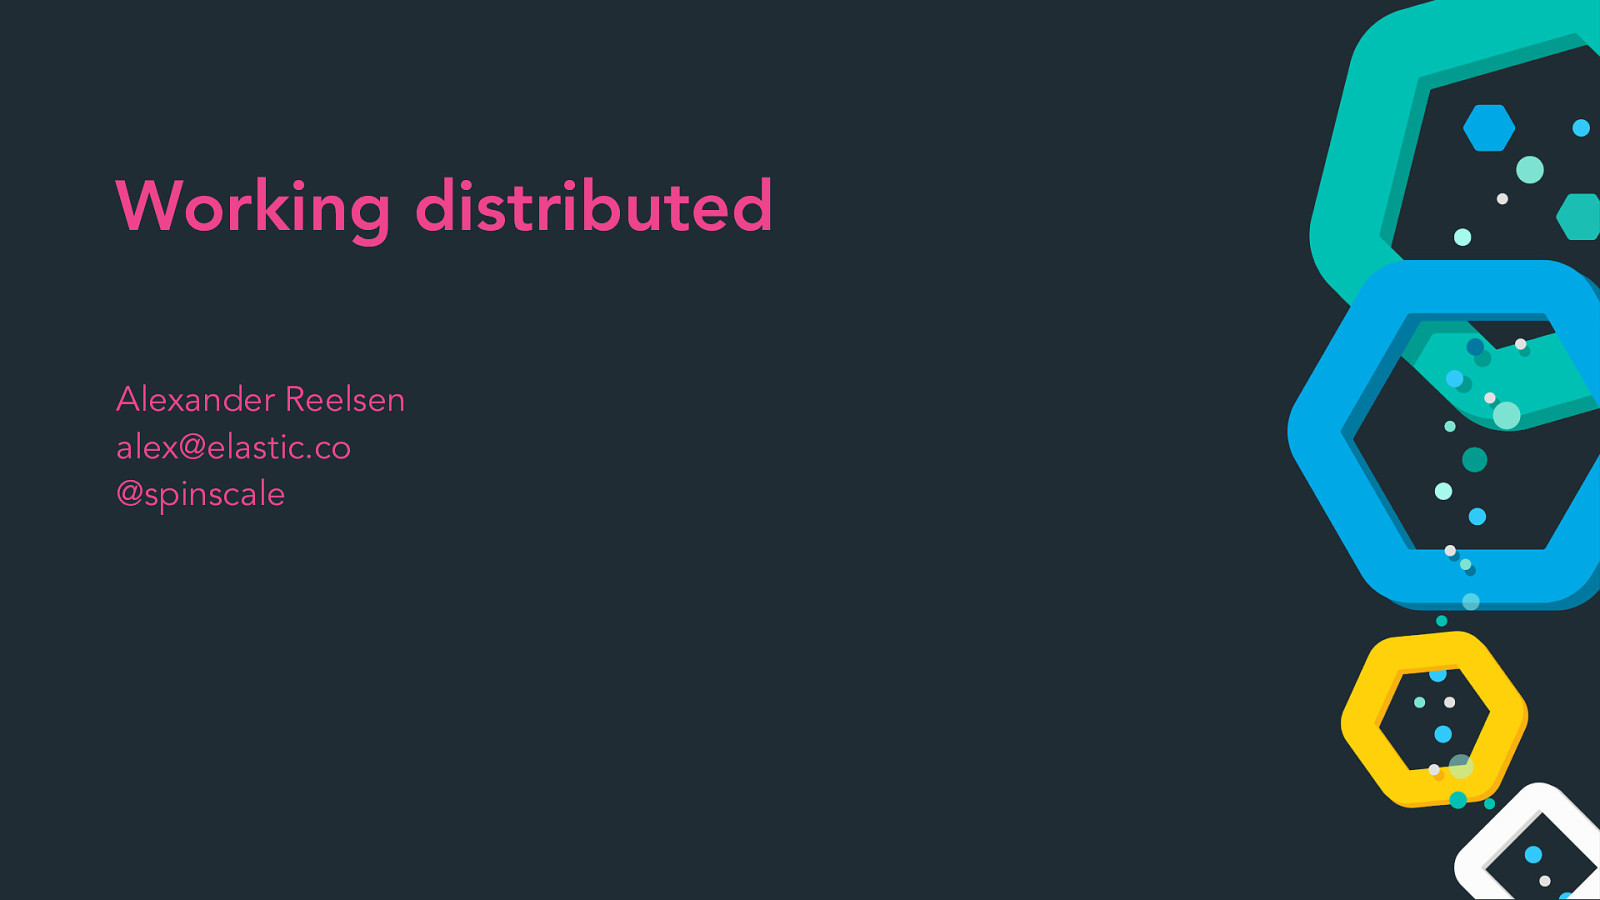 Working distributed